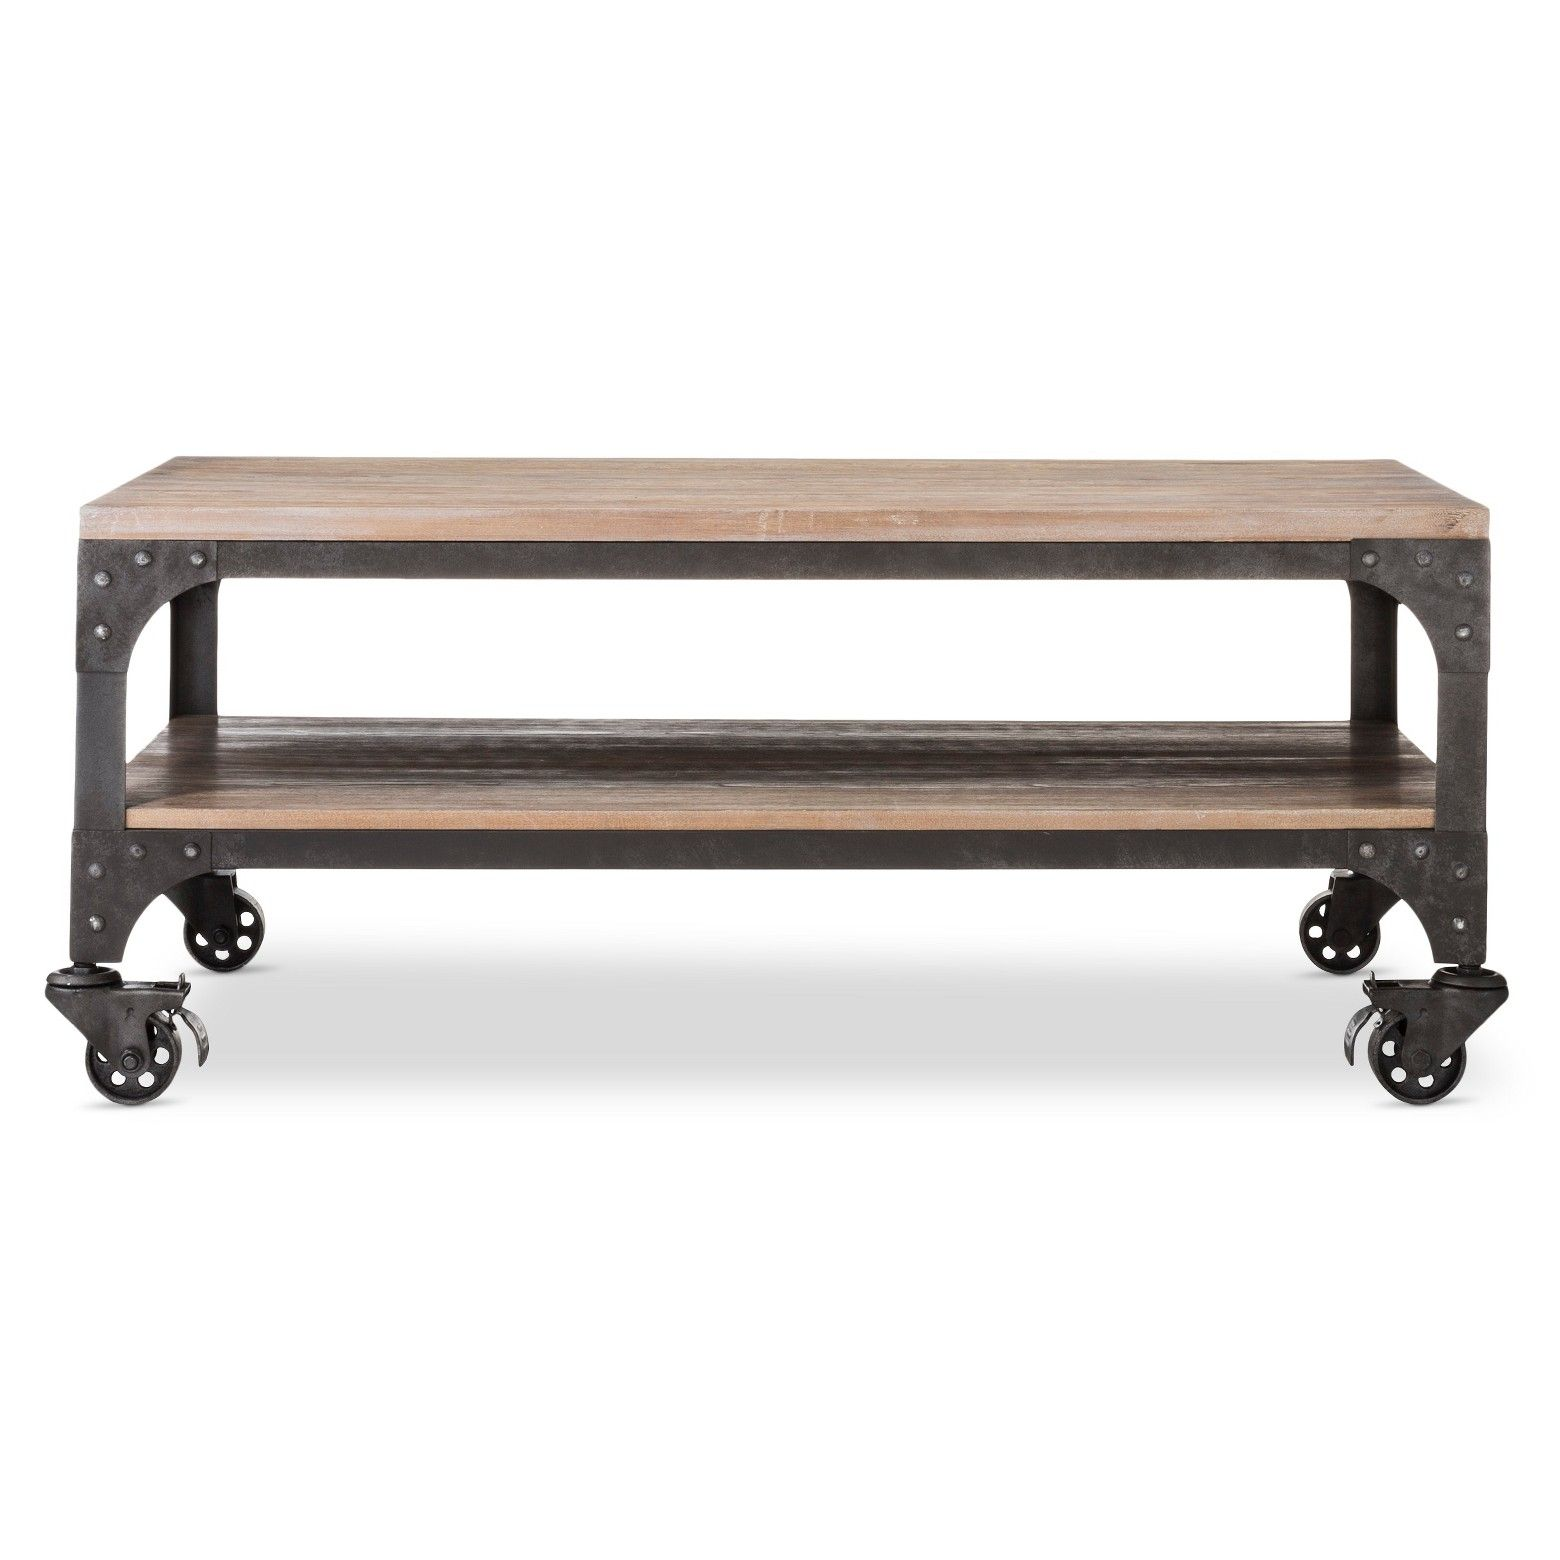 Franklin Coffee Table Weathered Gray Threshold™